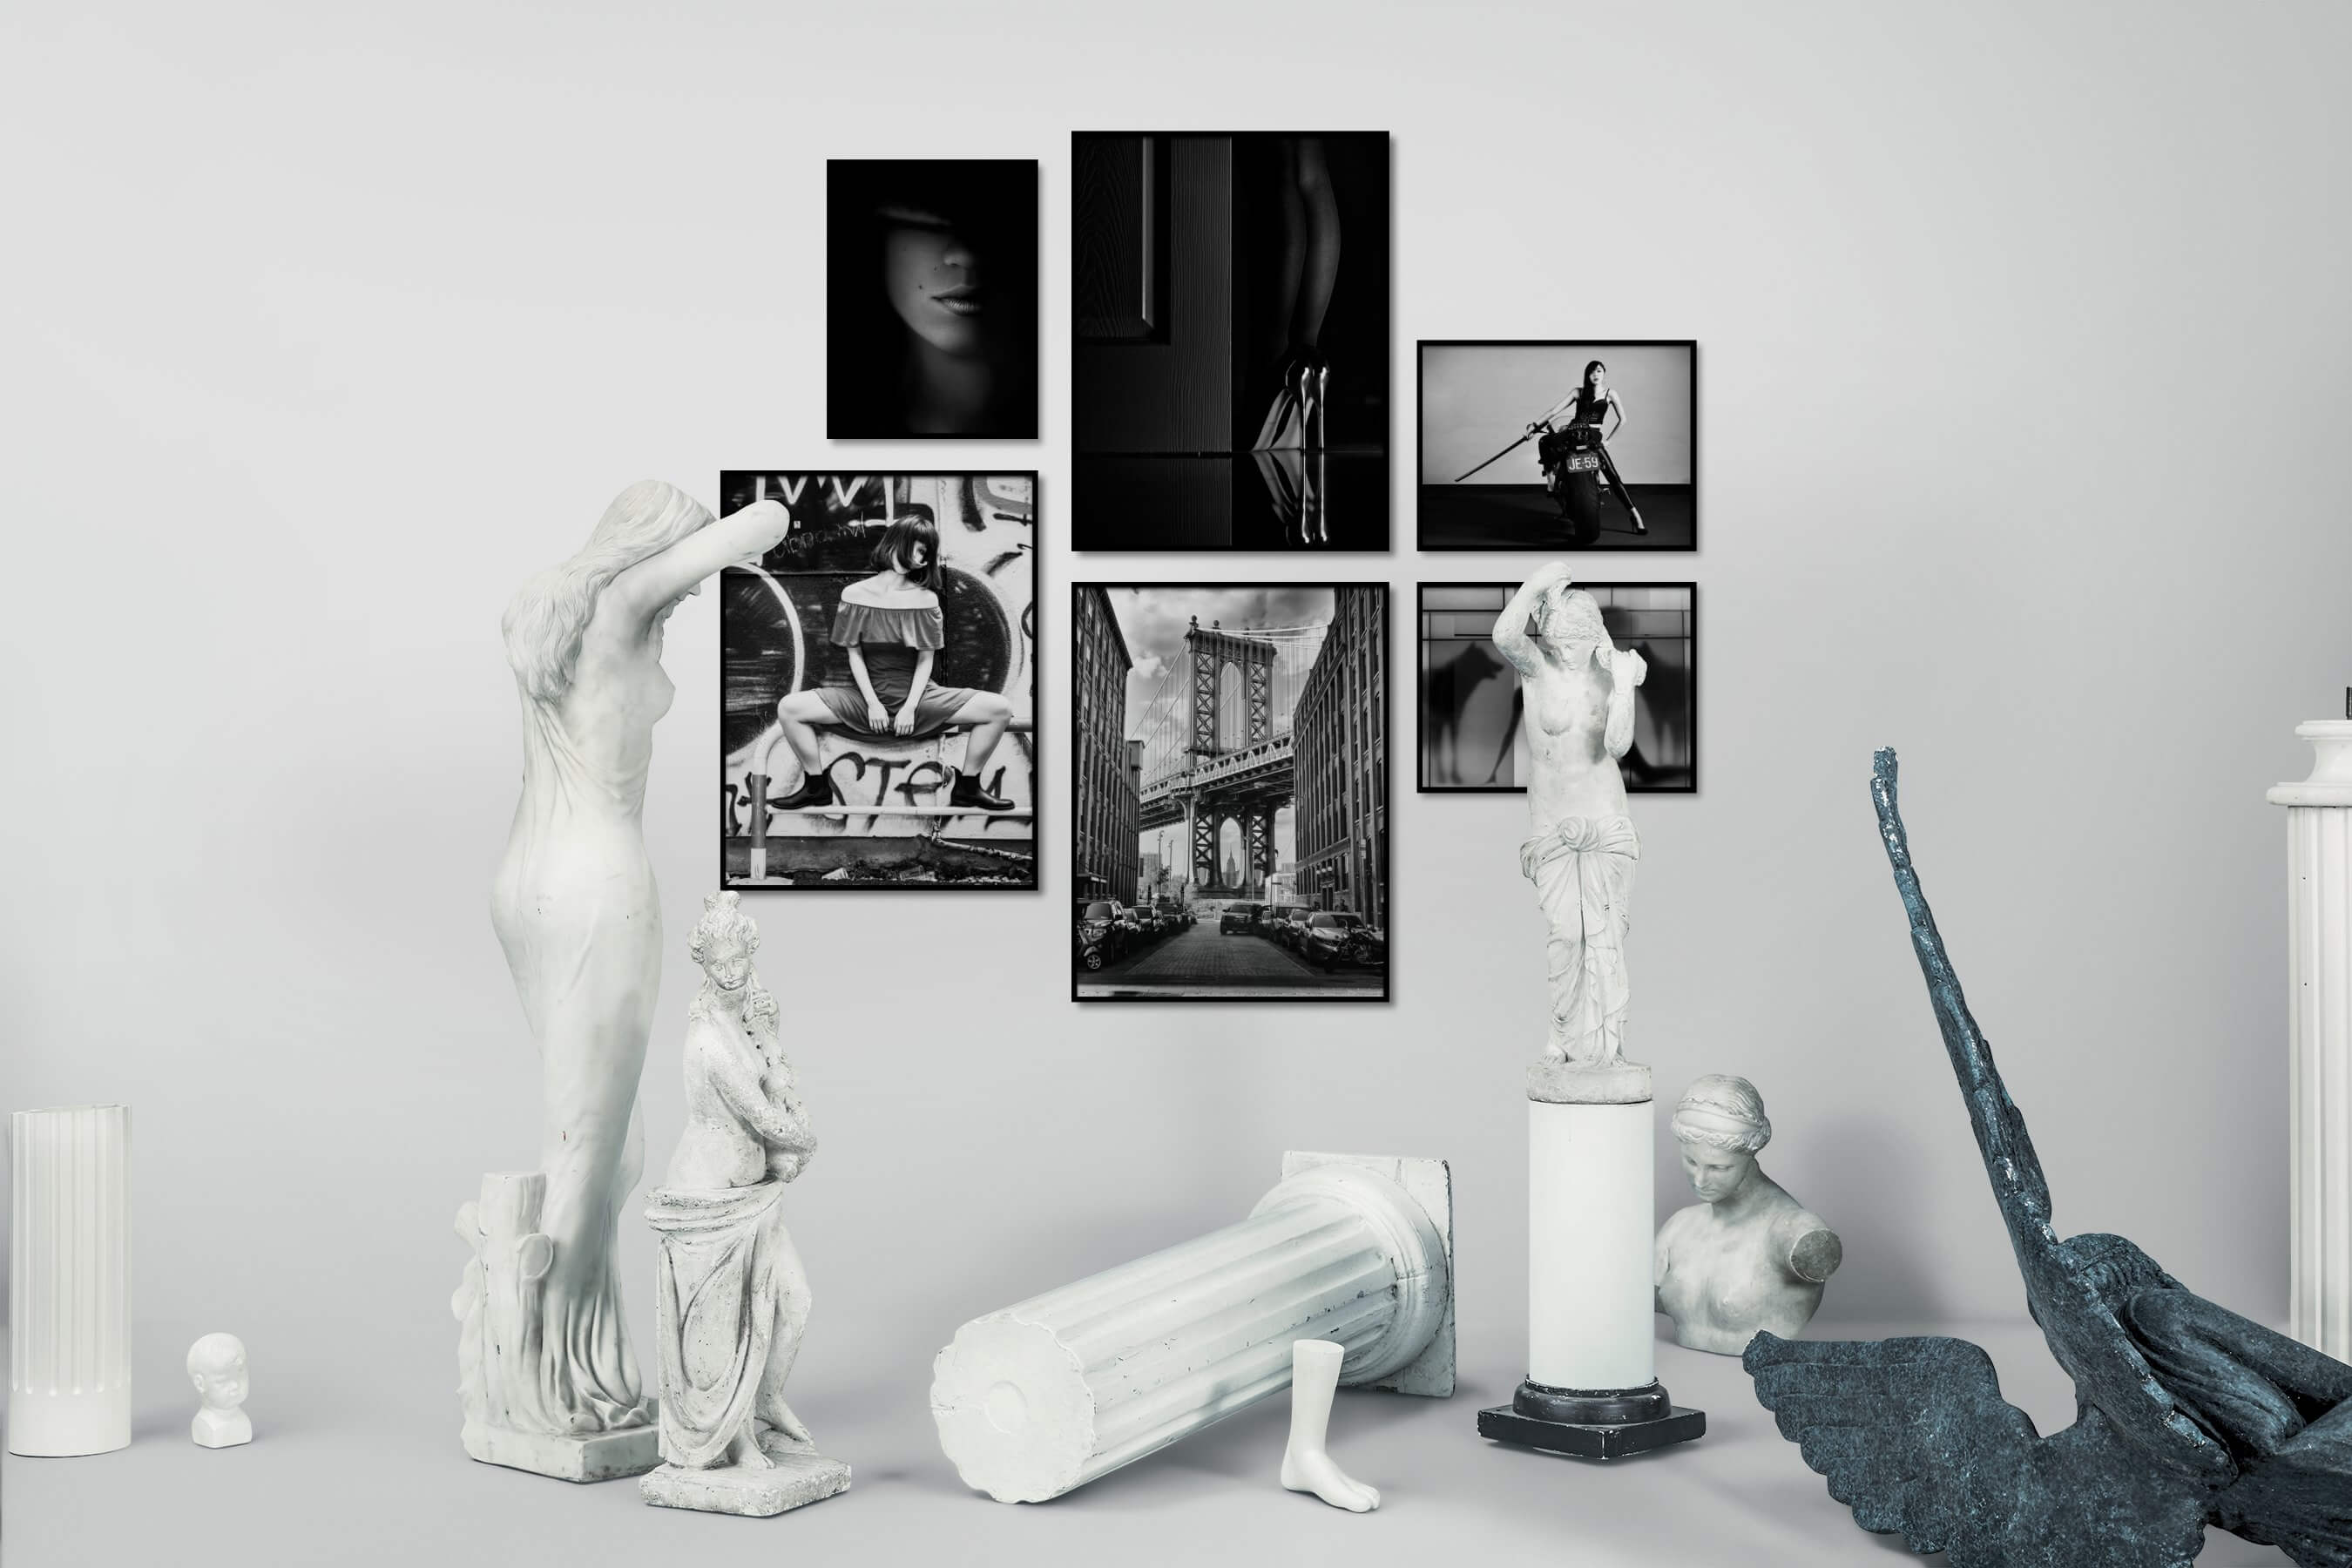 Gallery wall idea with six framed pictures arranged on a wall depicting Fashion & Beauty, Black & White, Dark Tones, For the Minimalist, For the Moderate, City Life, Americana, Artsy, and For the Maximalist